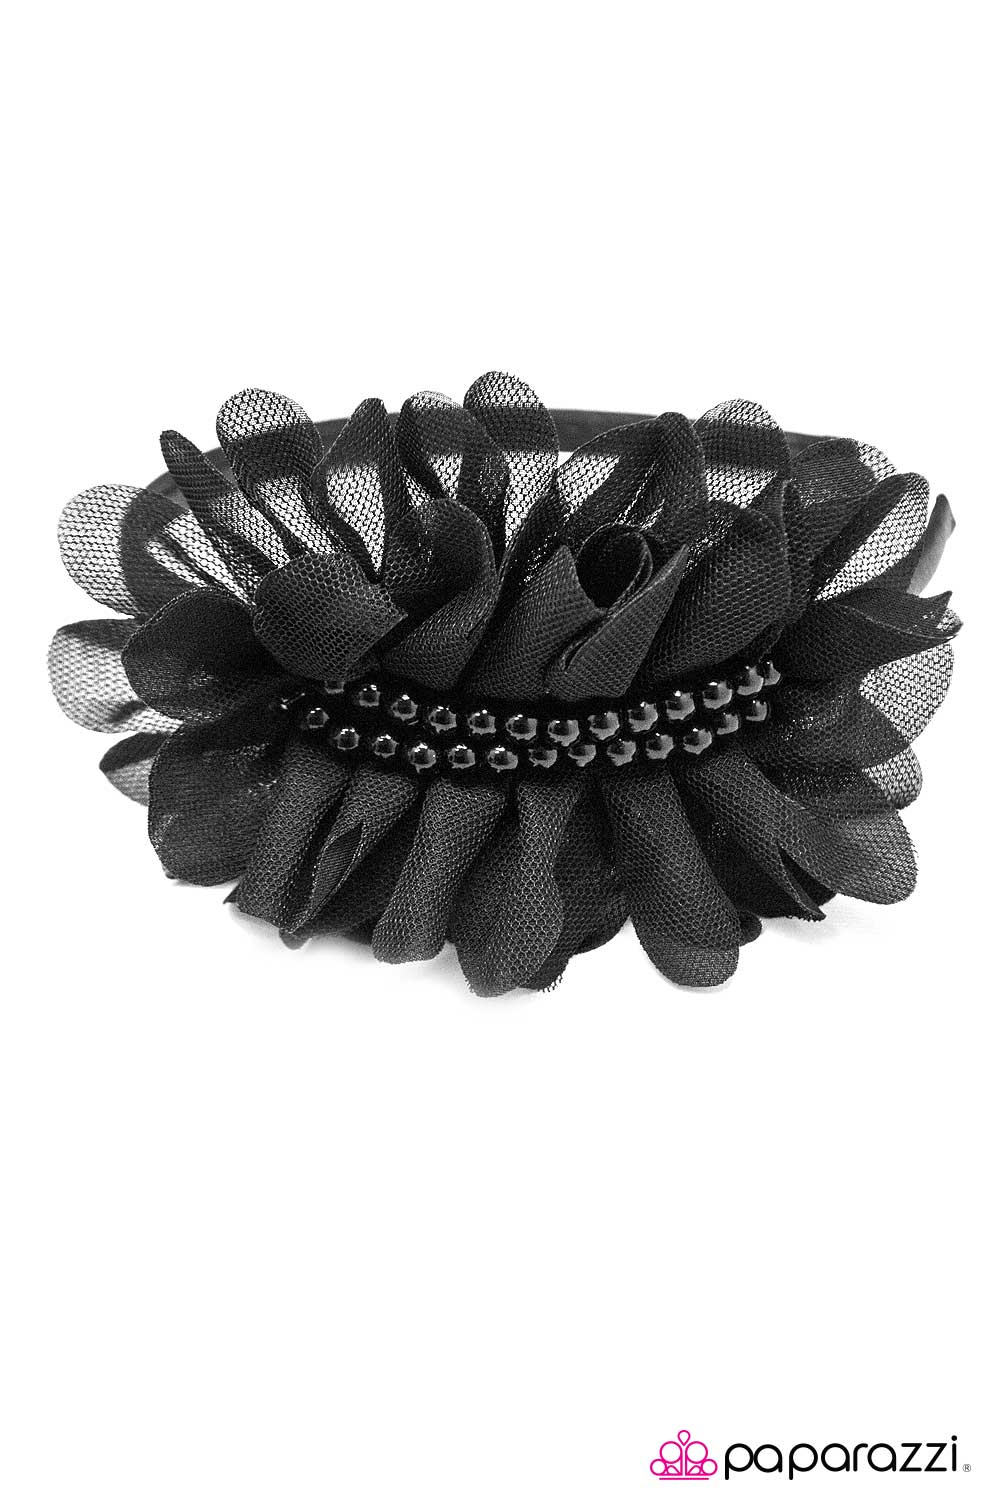 Partygoer - Black  - Paparazzi Accessories